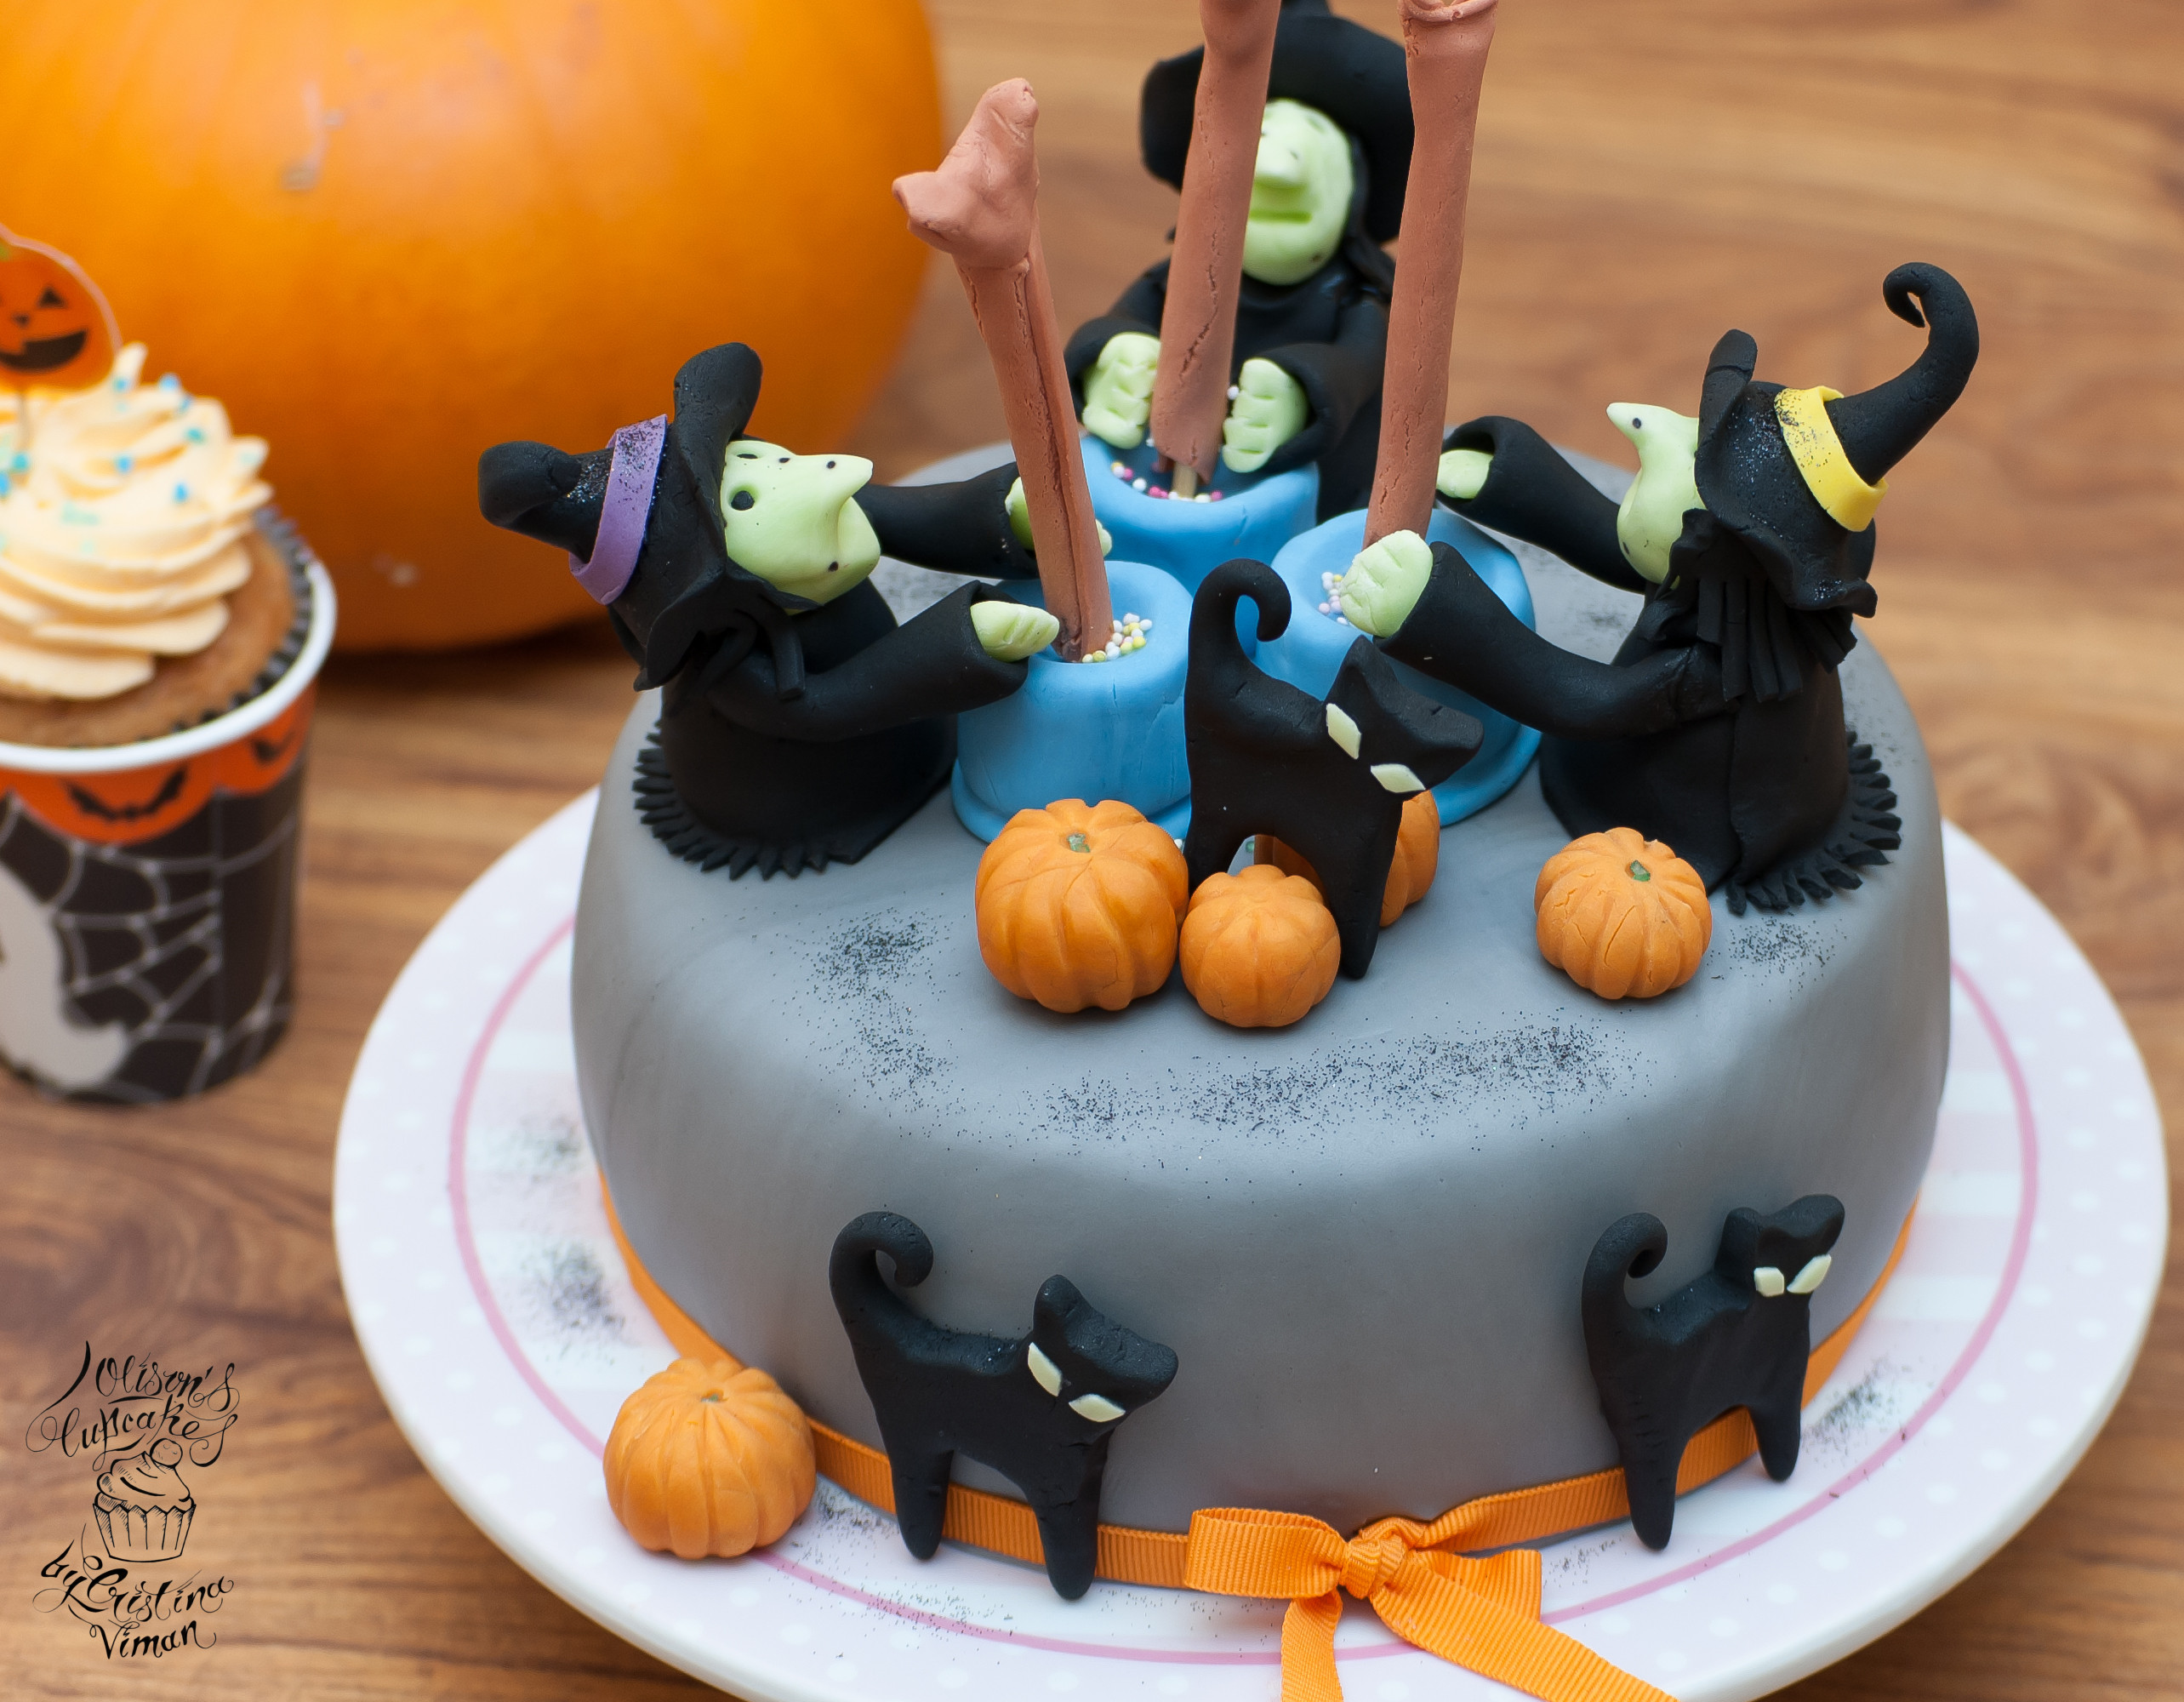 Halloween Cakes And Cupcakes  Halloween Wicked Witches Cake and Cupcakes – Olison s Cupcakes